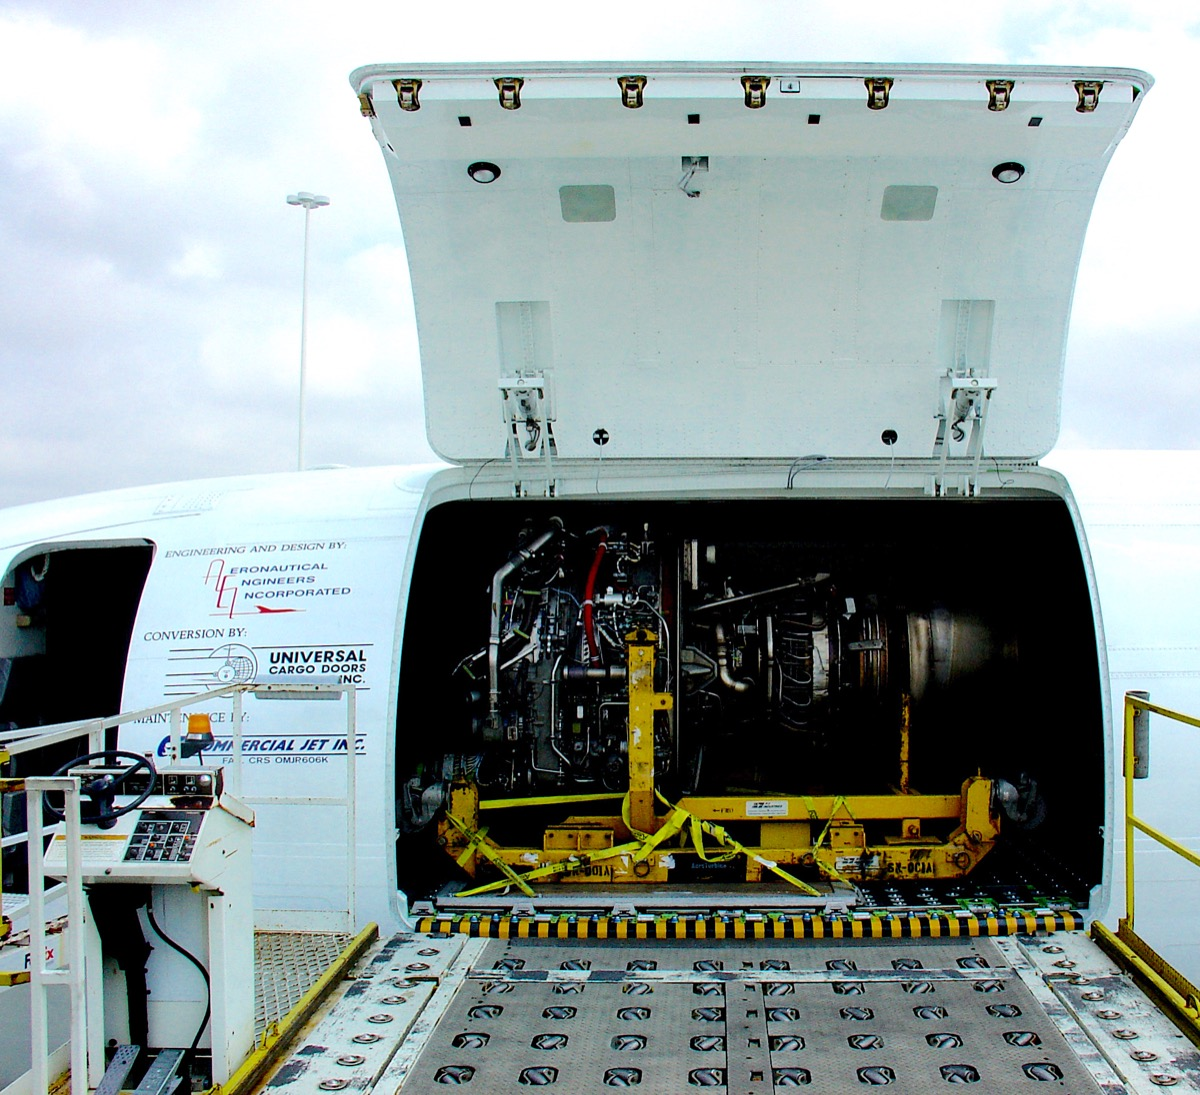 AEI undertakes another B737-400SF conversion for Automatic